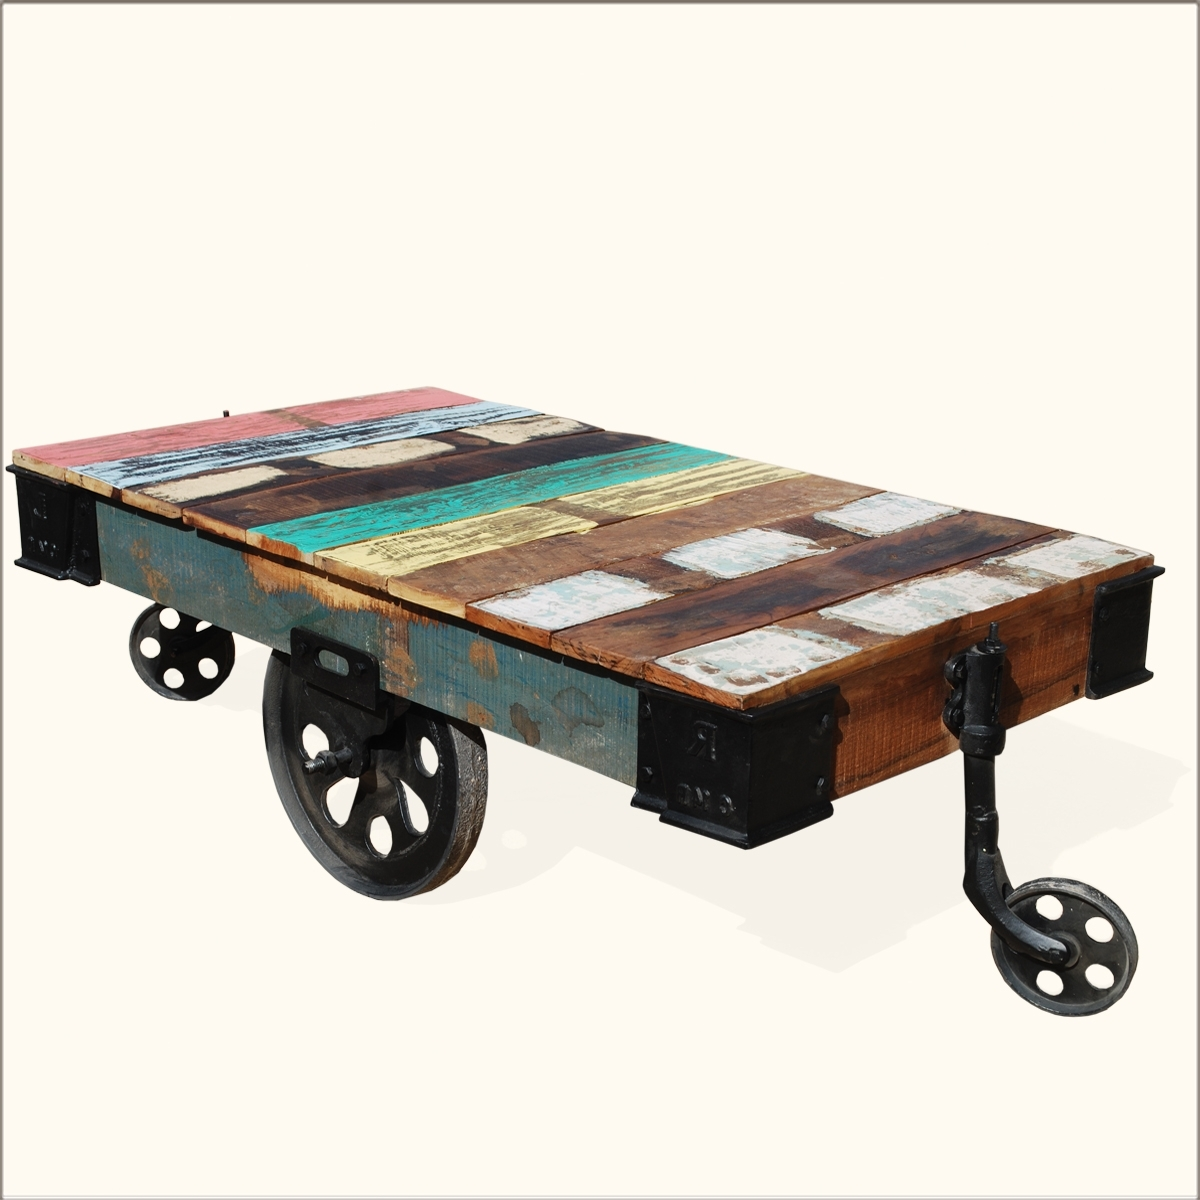 Well Known Iron Wood Coffee Tables With Wheels Pertaining To Rustic Assorted Color Wooden Coffee Table With Black Metal Wheels Of (View 15 of 20)